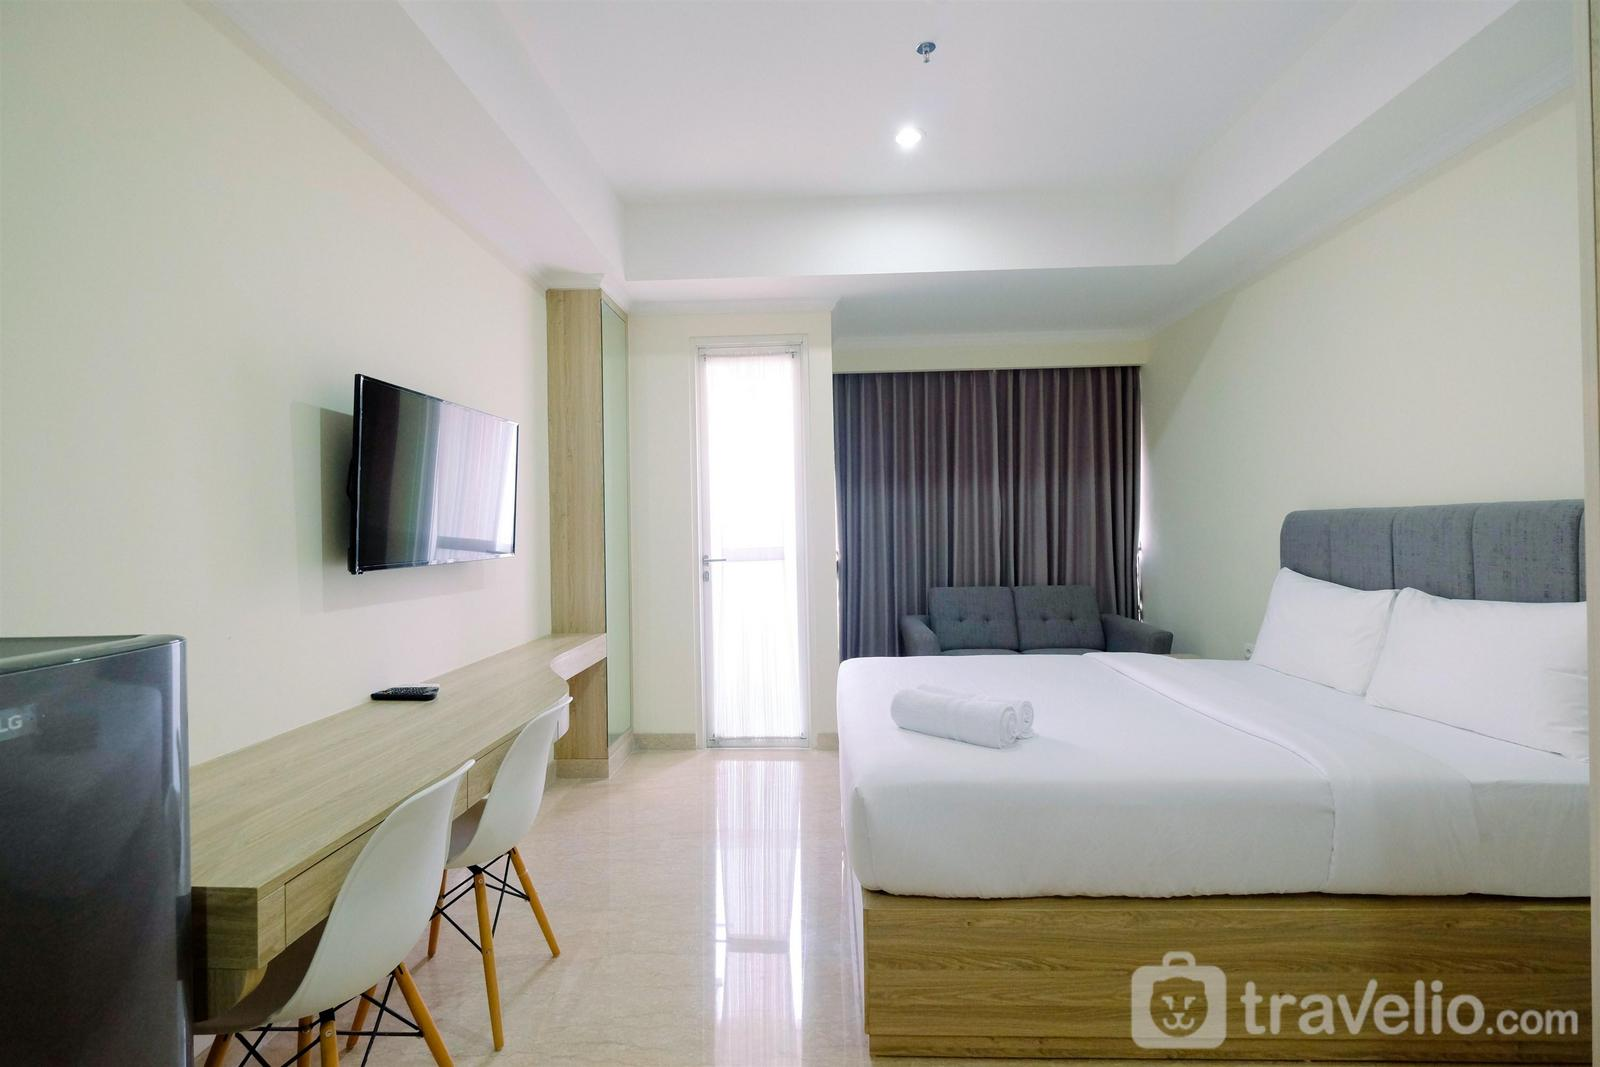 Menteng Park - Simply Modern Studio Menteng Park Apartment By Travelio